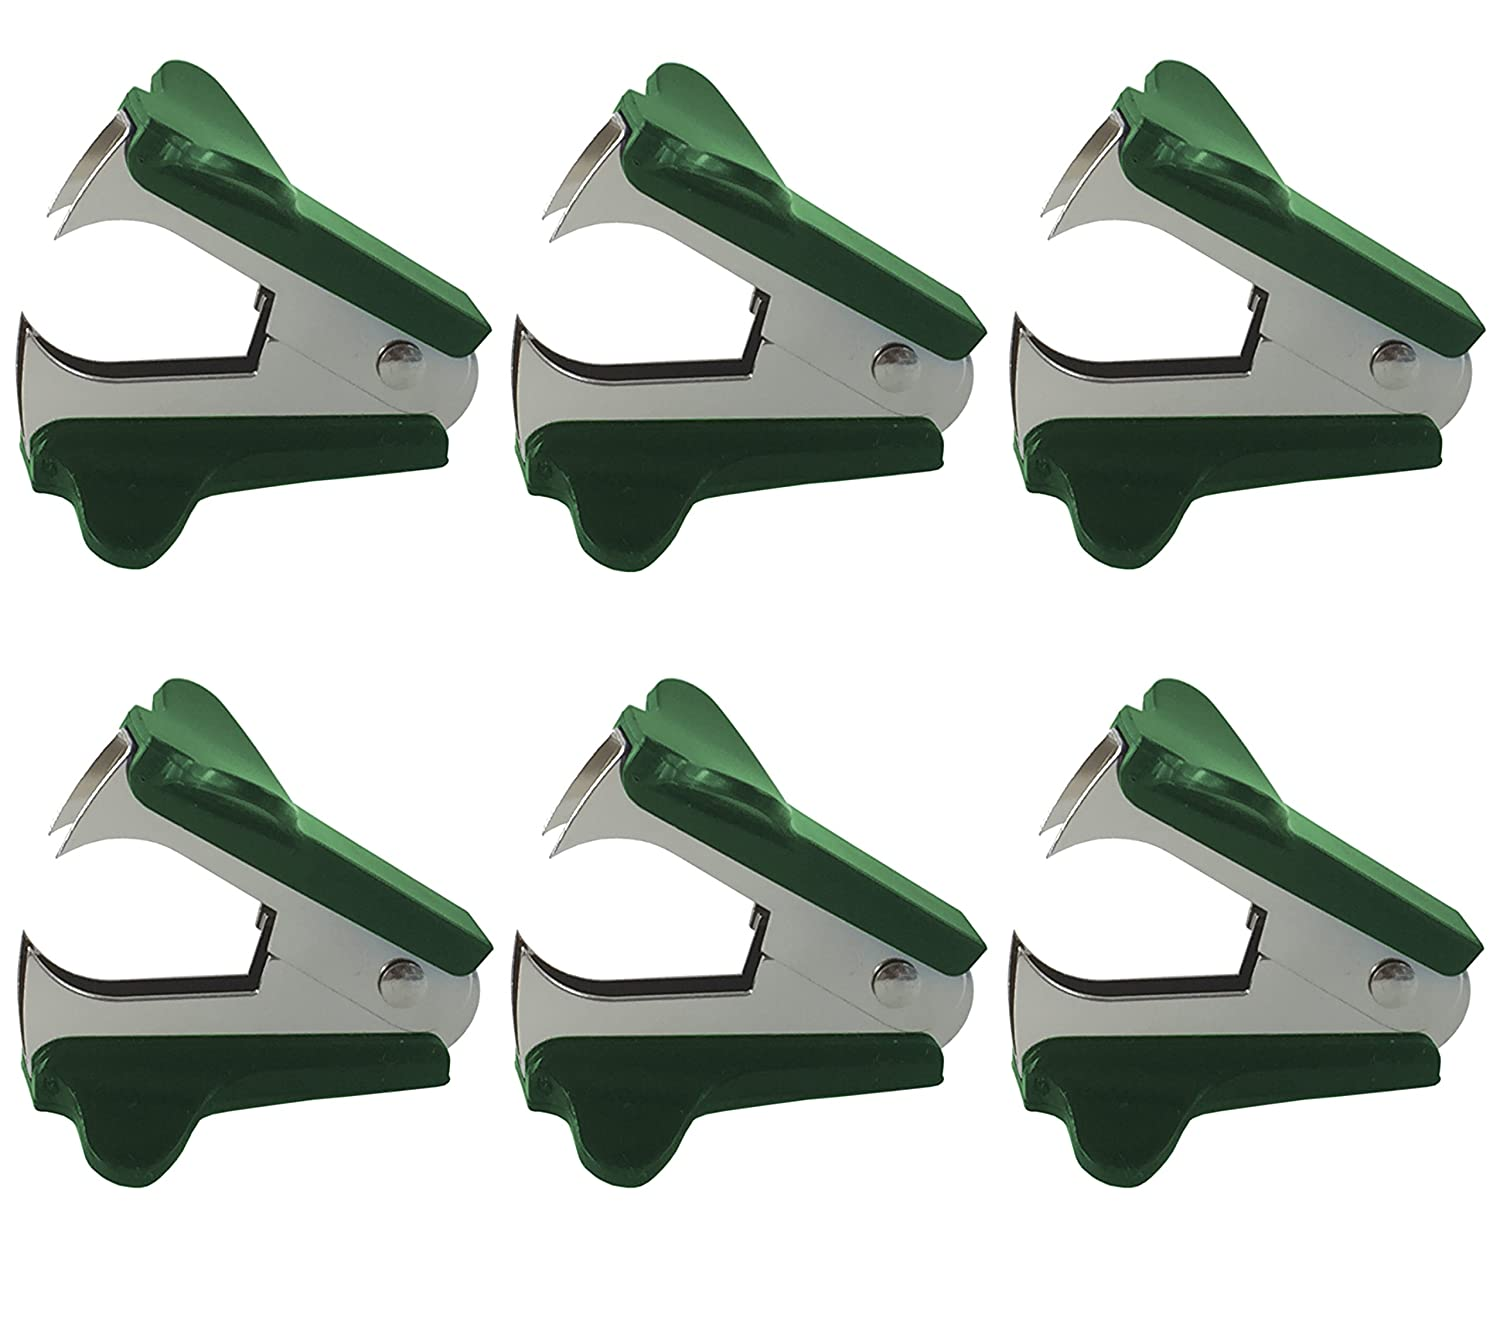 Clipco Staple Remover (6-Pack) (Gray) Trade Quest Global Corp